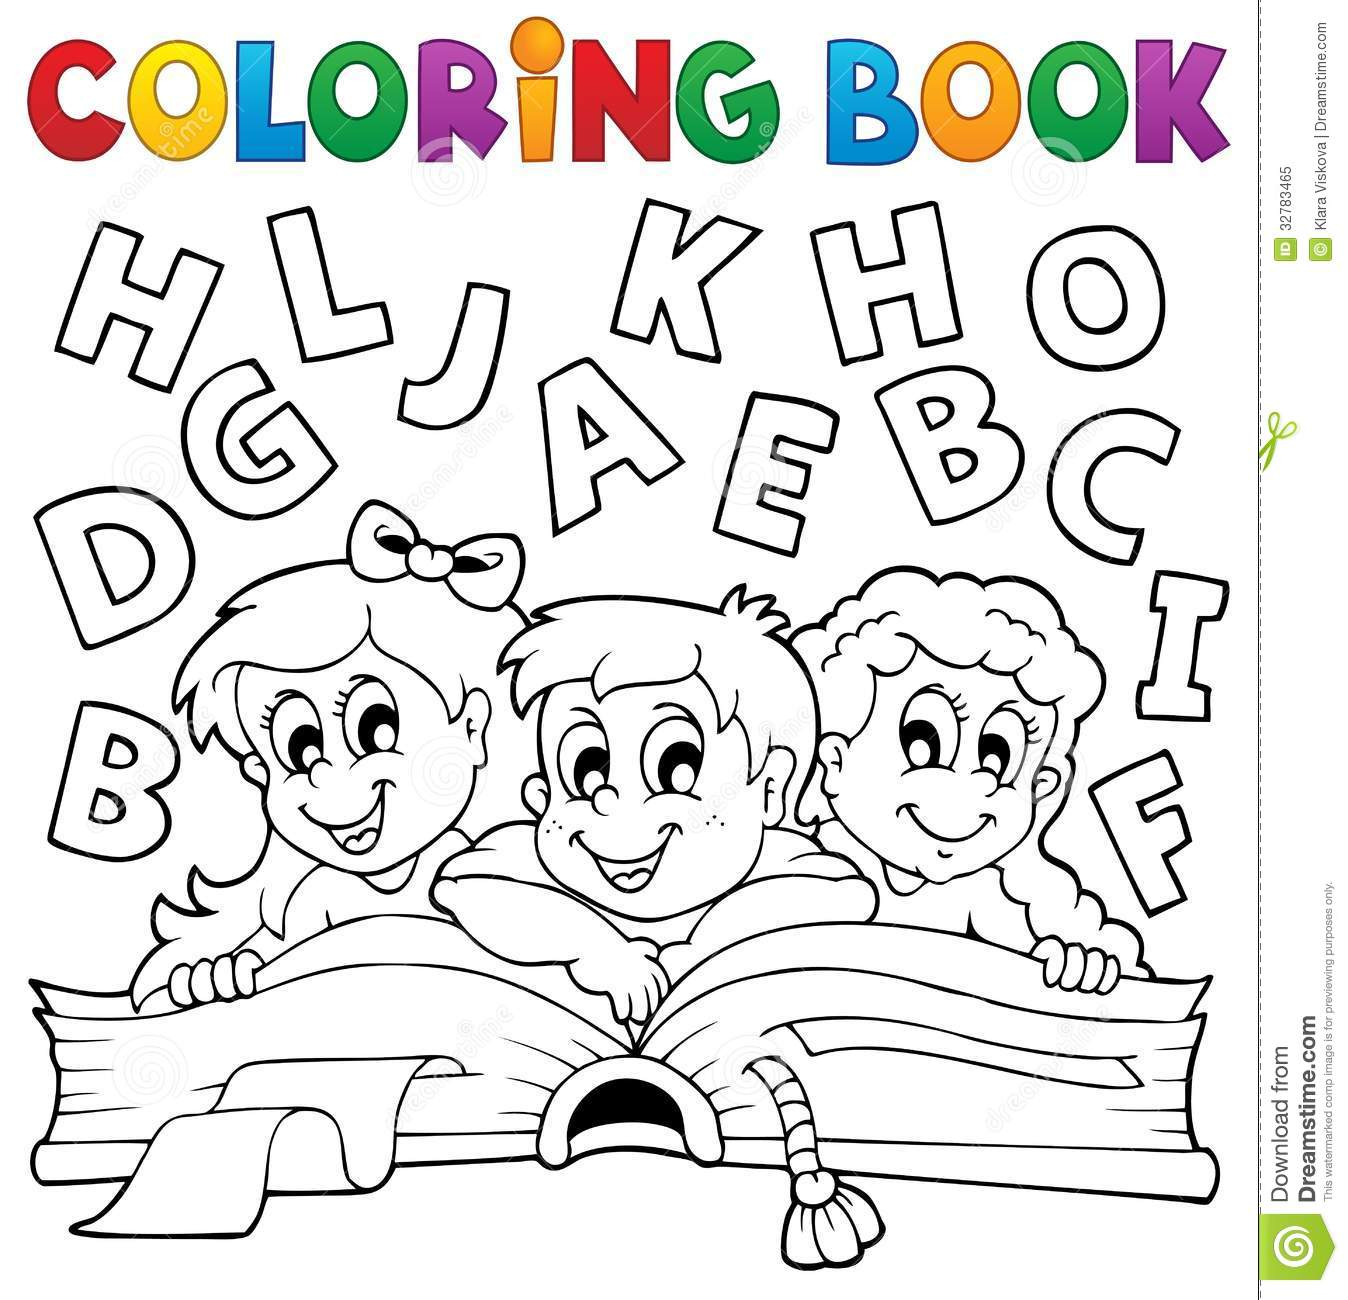 Coloring book kids theme 5 stock vector. Image of clipart ...